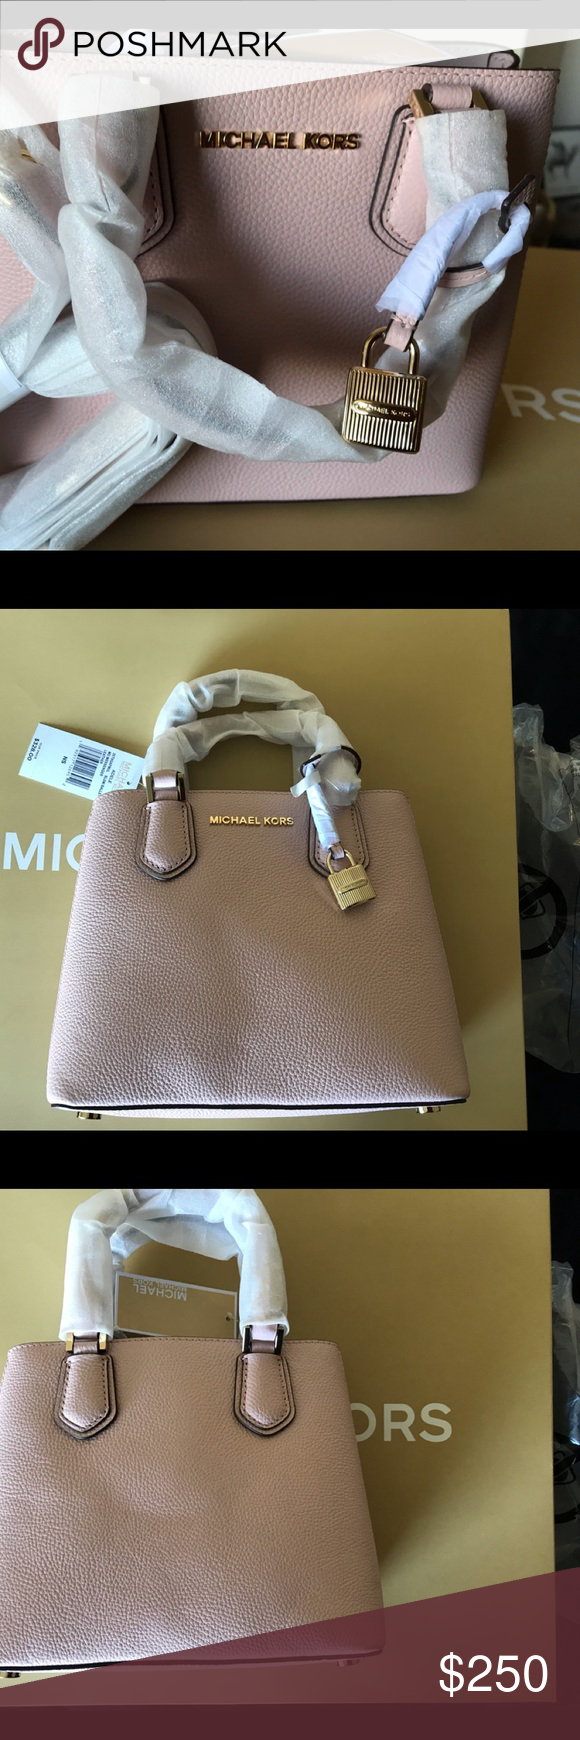 6951ac7f83753e Michael Kors Adele MD Leather Messenger Bag Michael Kors Adele MD Leather  Messenger Bag Blossom/